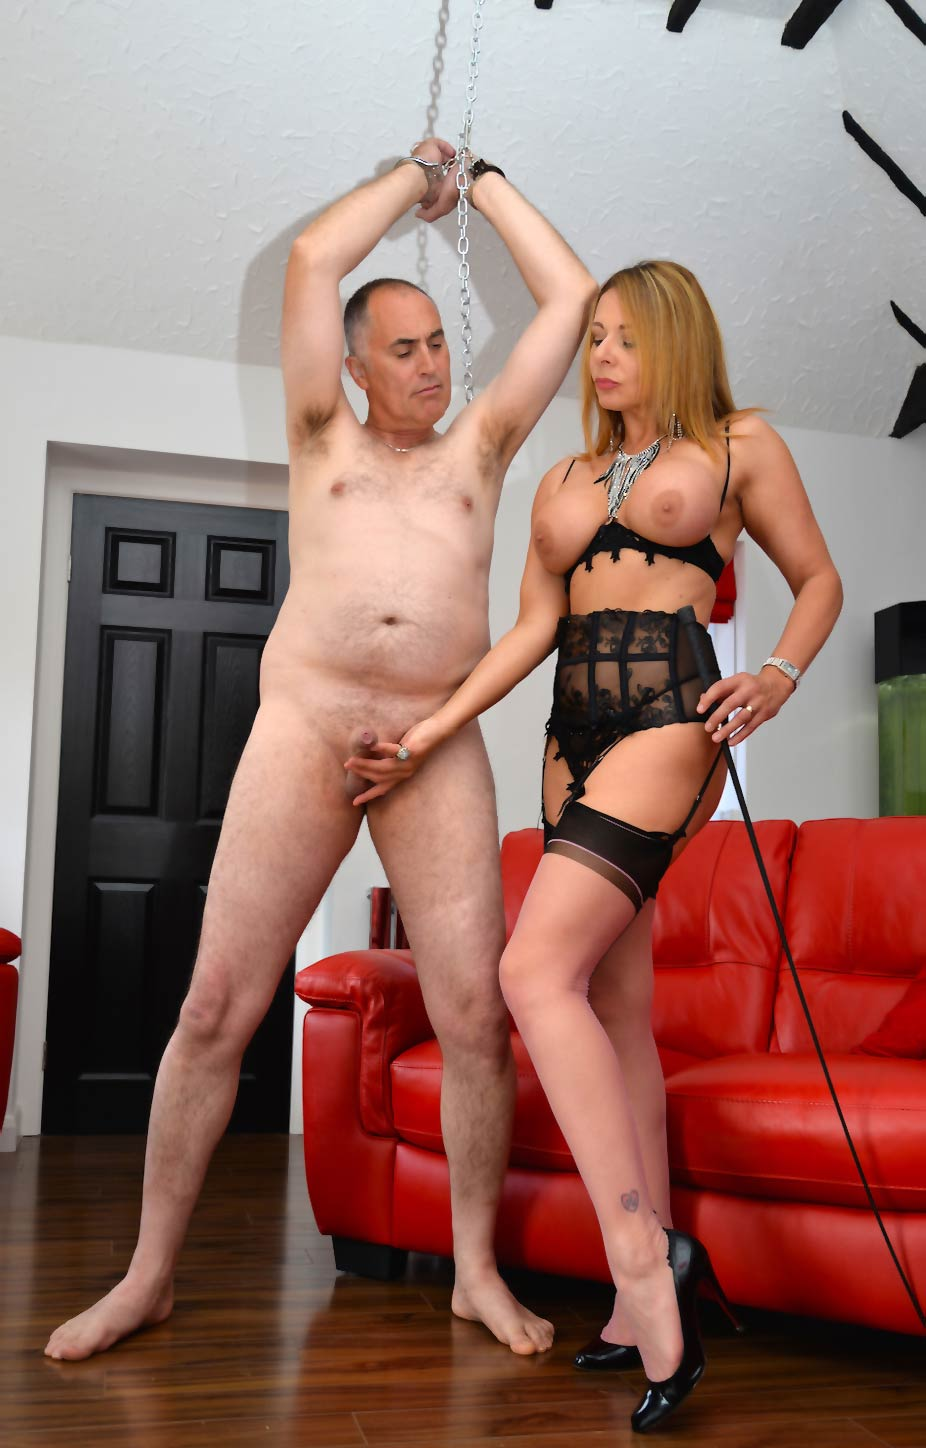 Cock and Ball Torture with Mistress Carly | UK Dominatrix